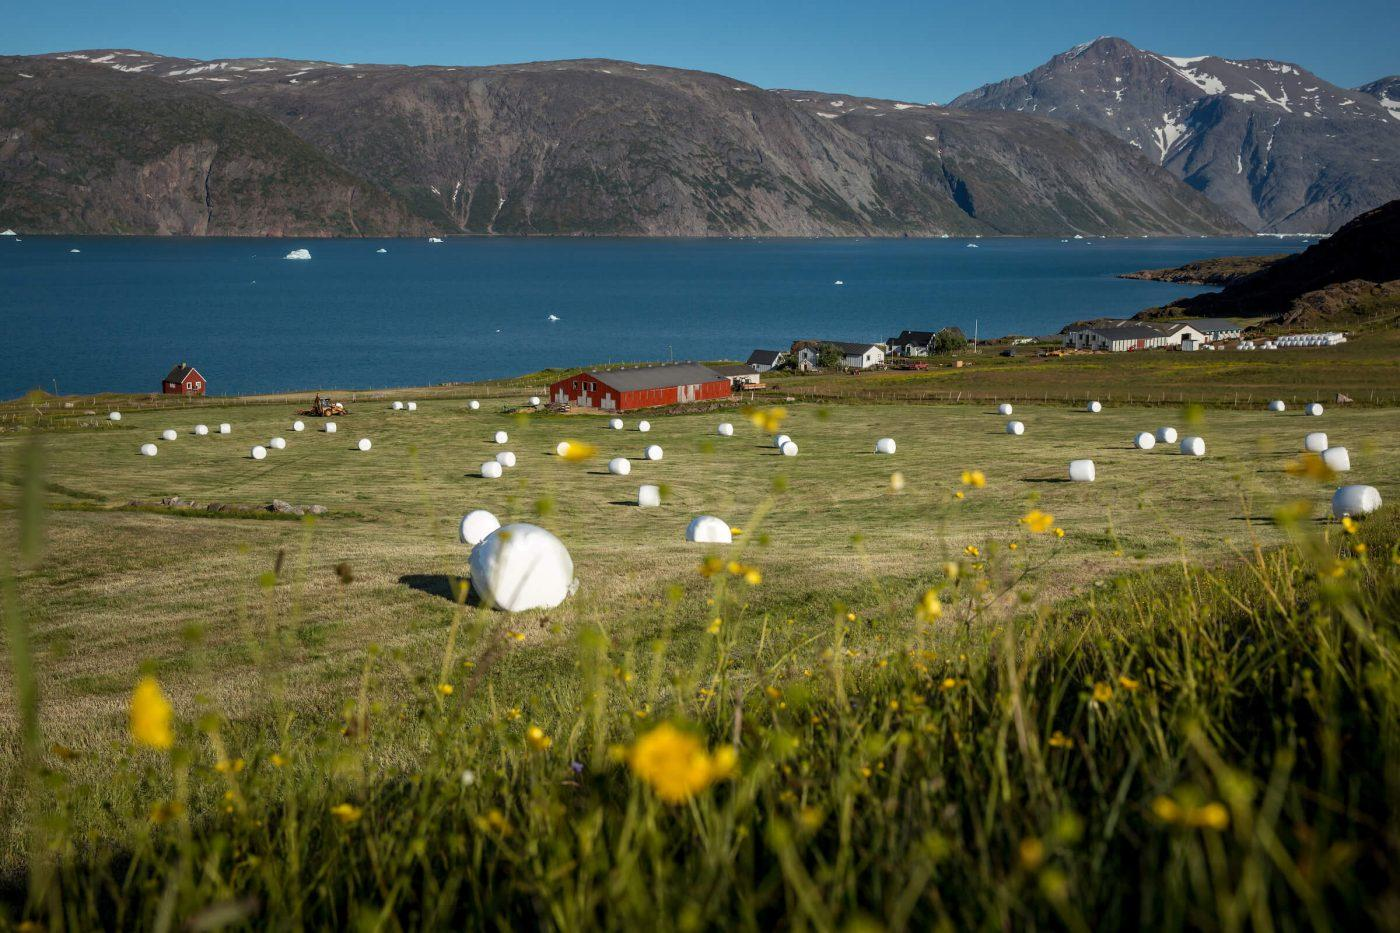 A field with straw bales at a farm in Qassiarsuk in South Greenland. Photo by Mads Pihl